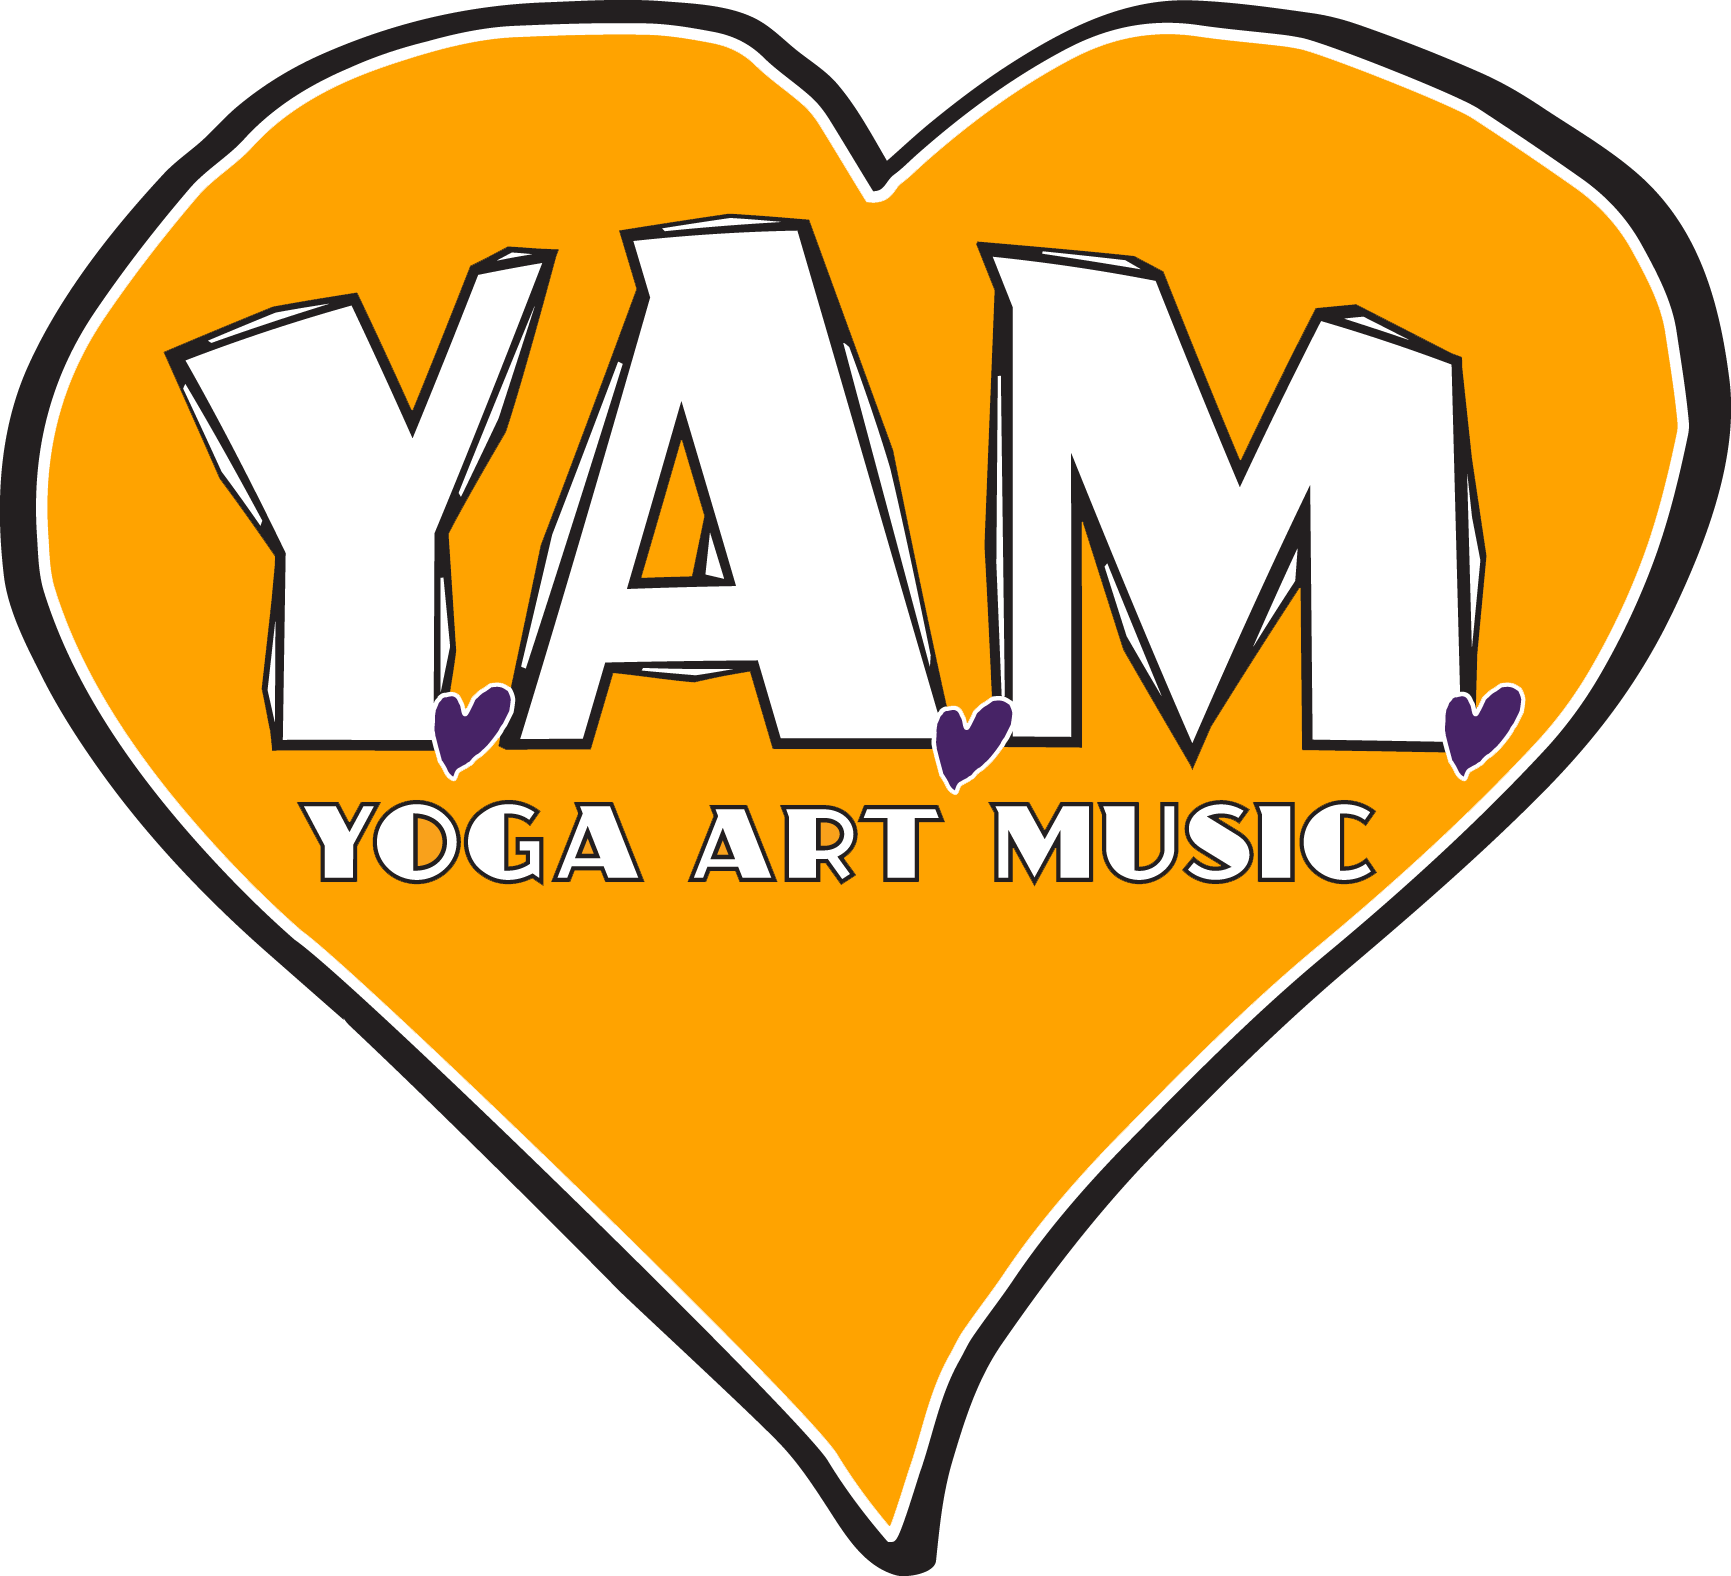 Yoga. Art. Music.